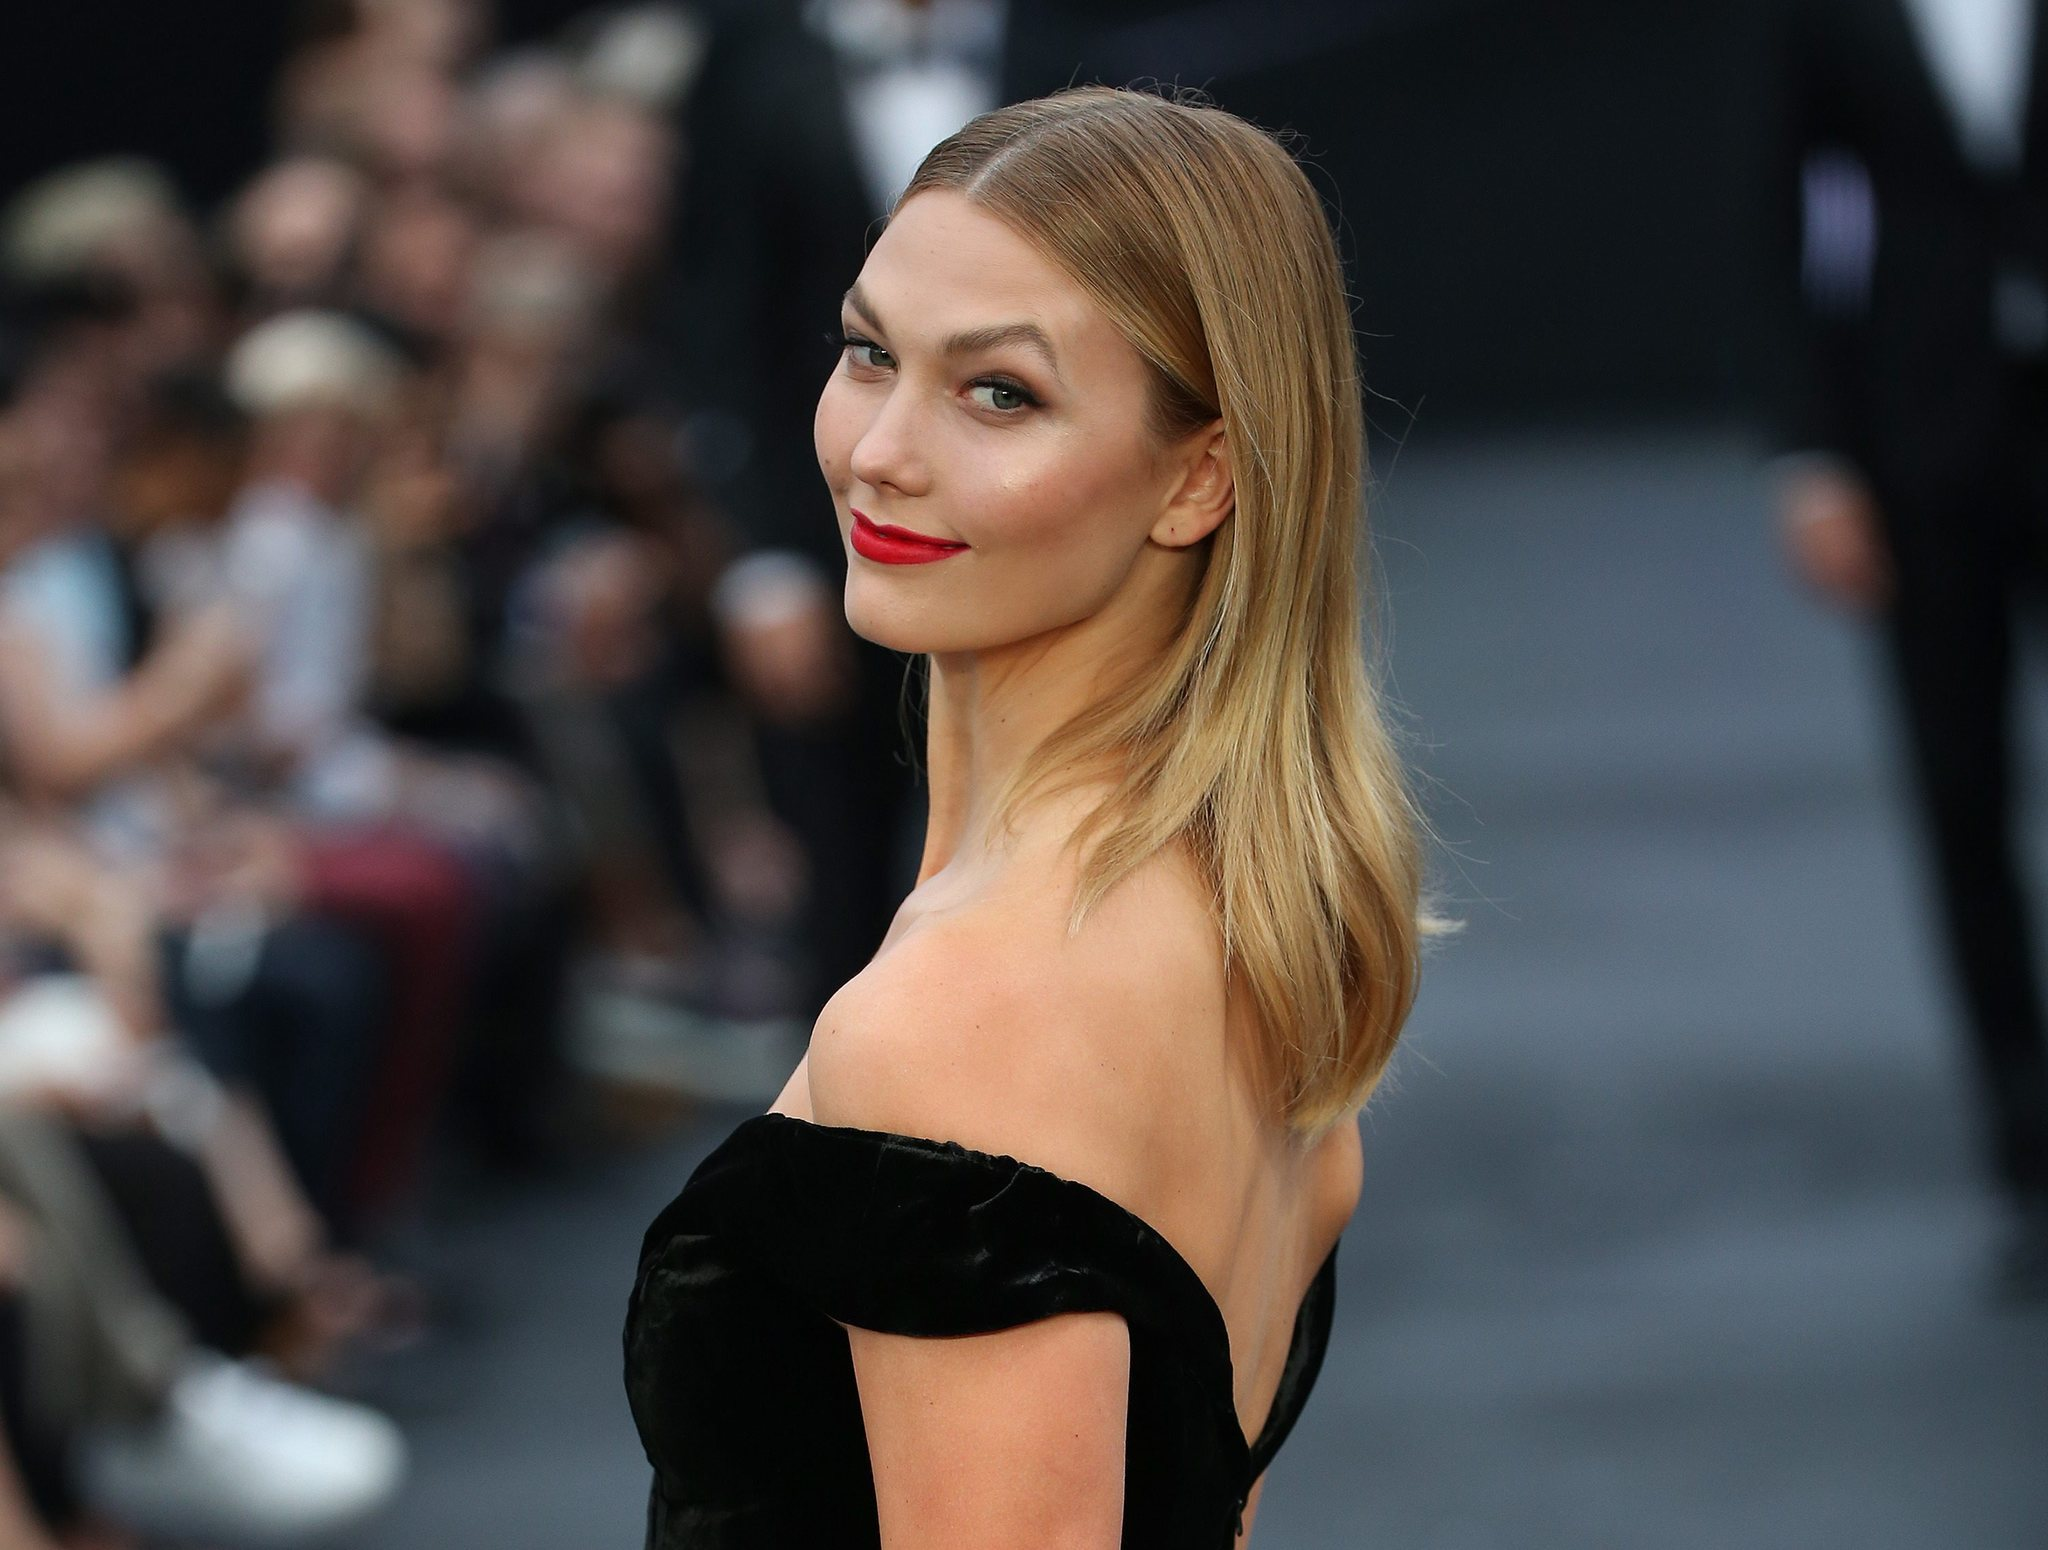 Model Karlie Kloss apologized Wednesday for a recent Vogue photo shoot where she dressed as a Japanese geisha. (EPA)